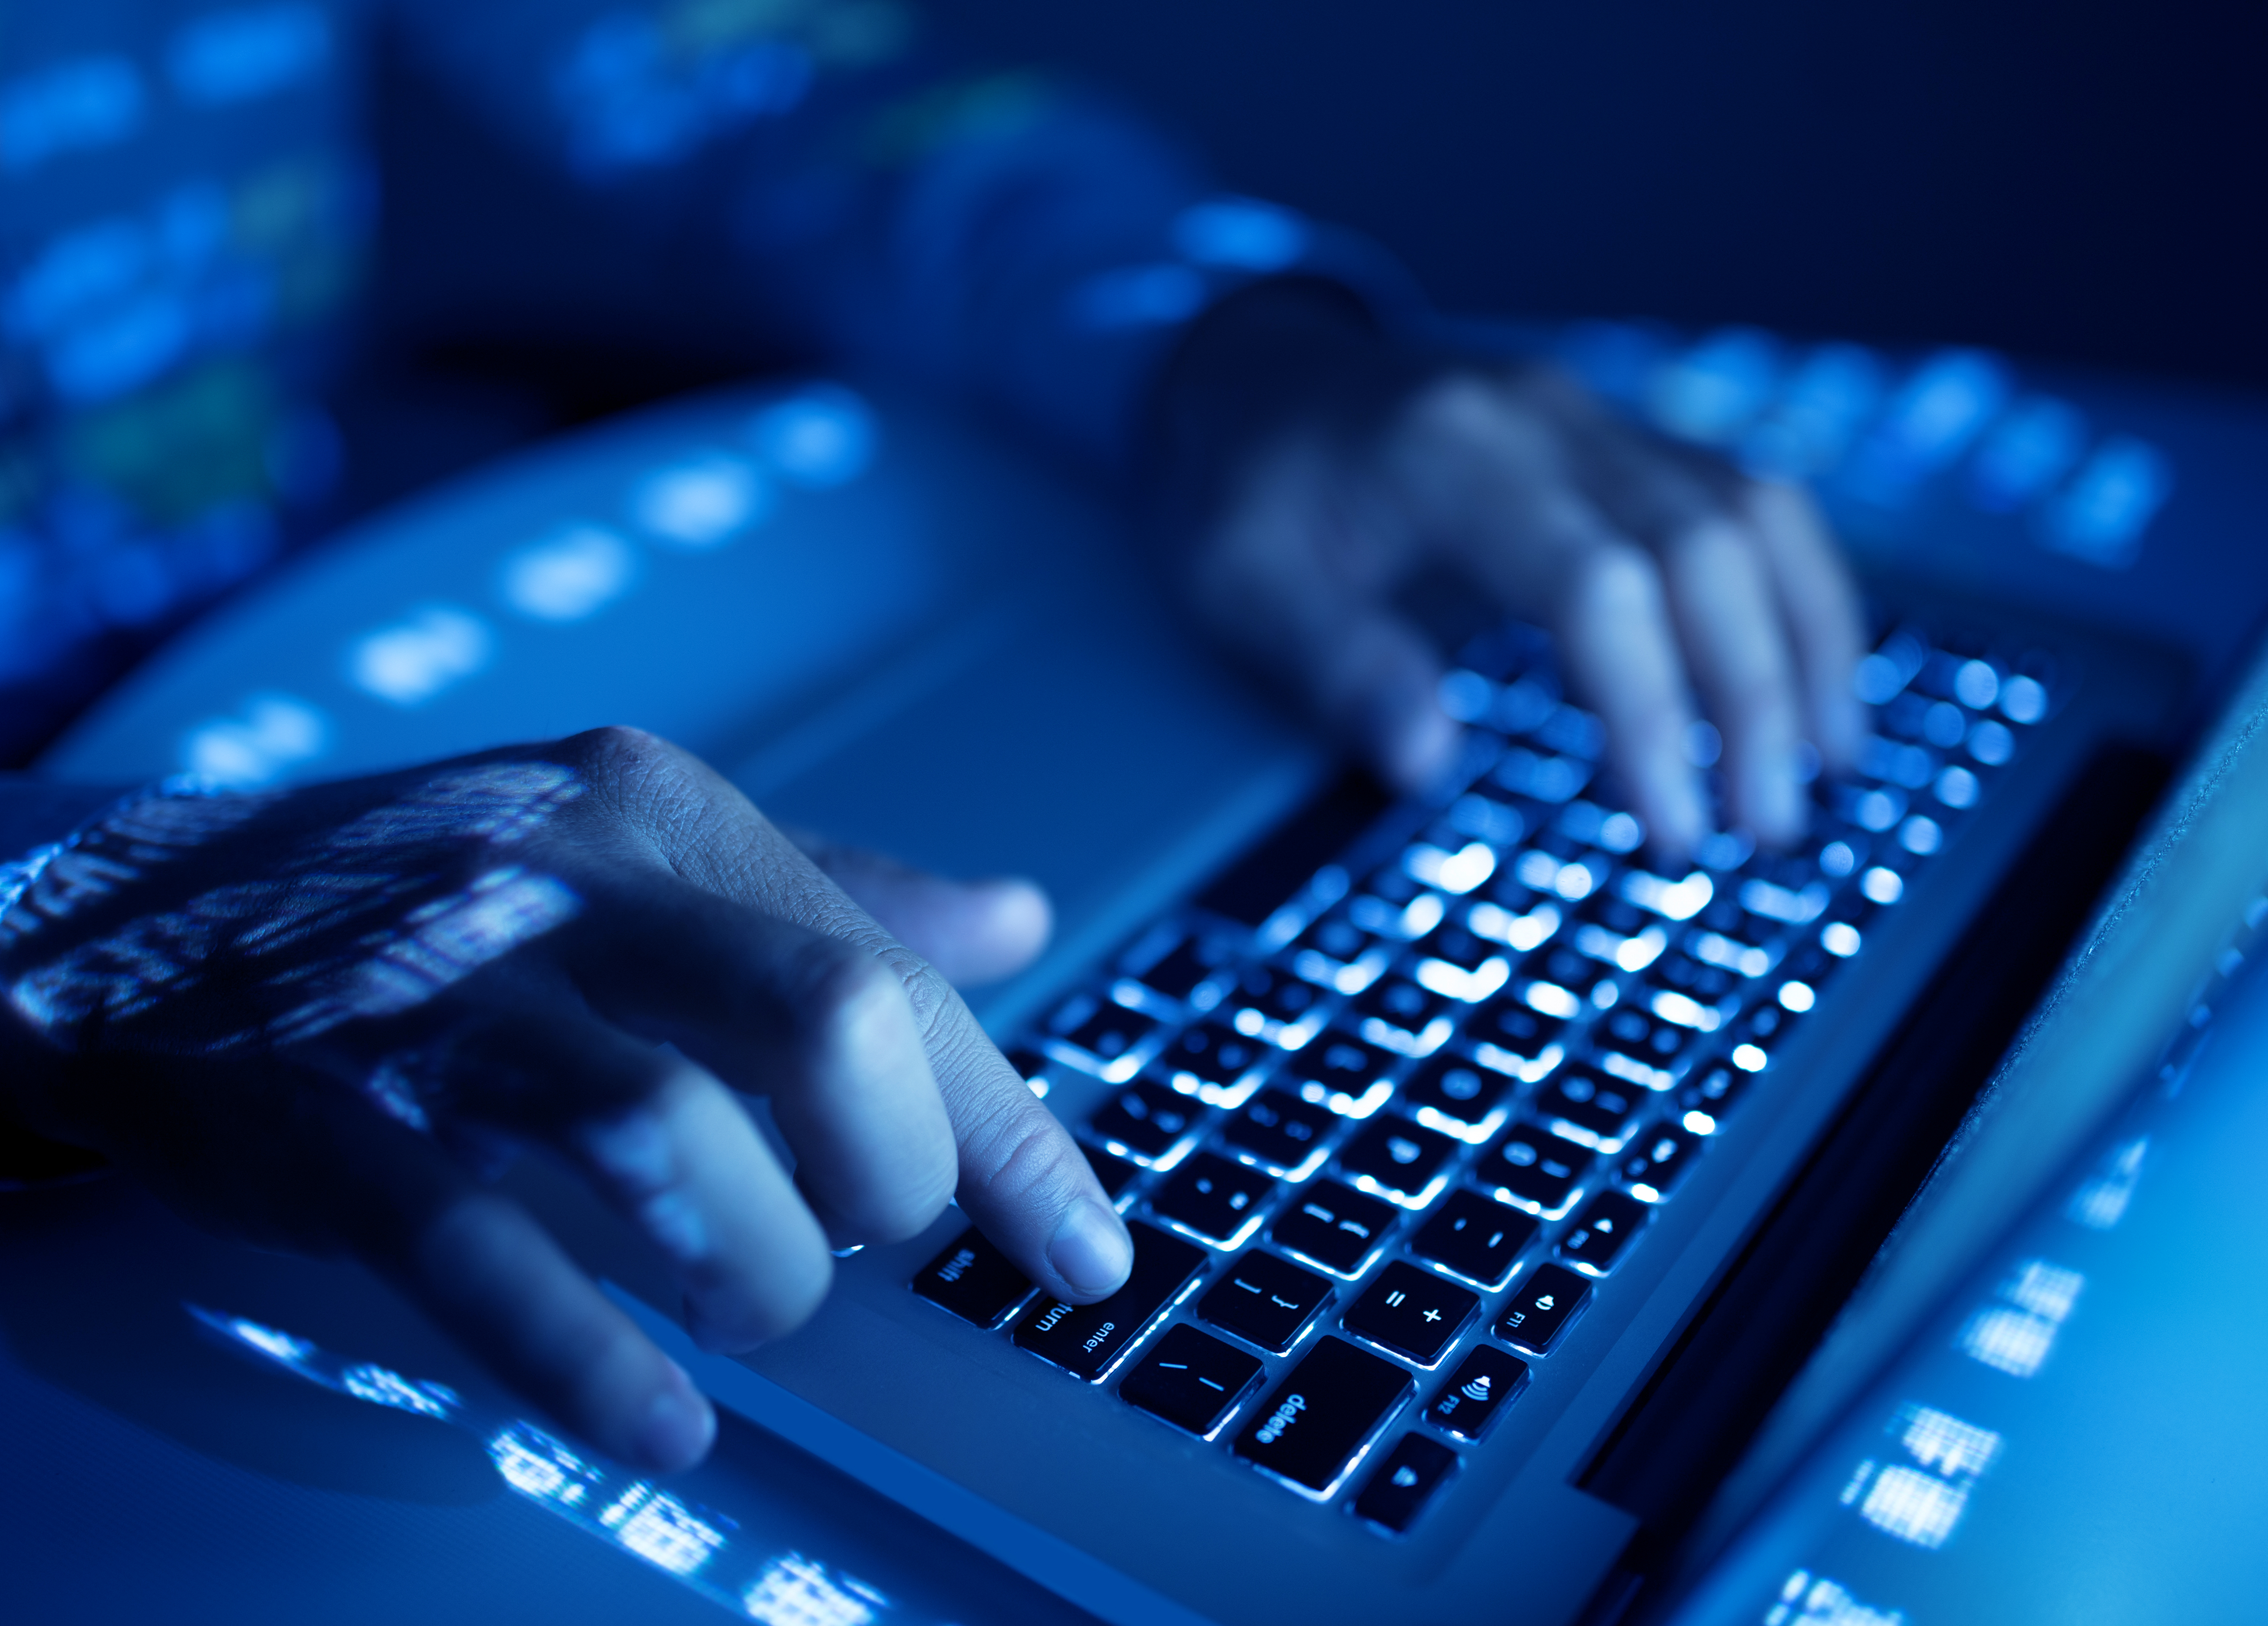 State of the Cybersecurity Arms Race